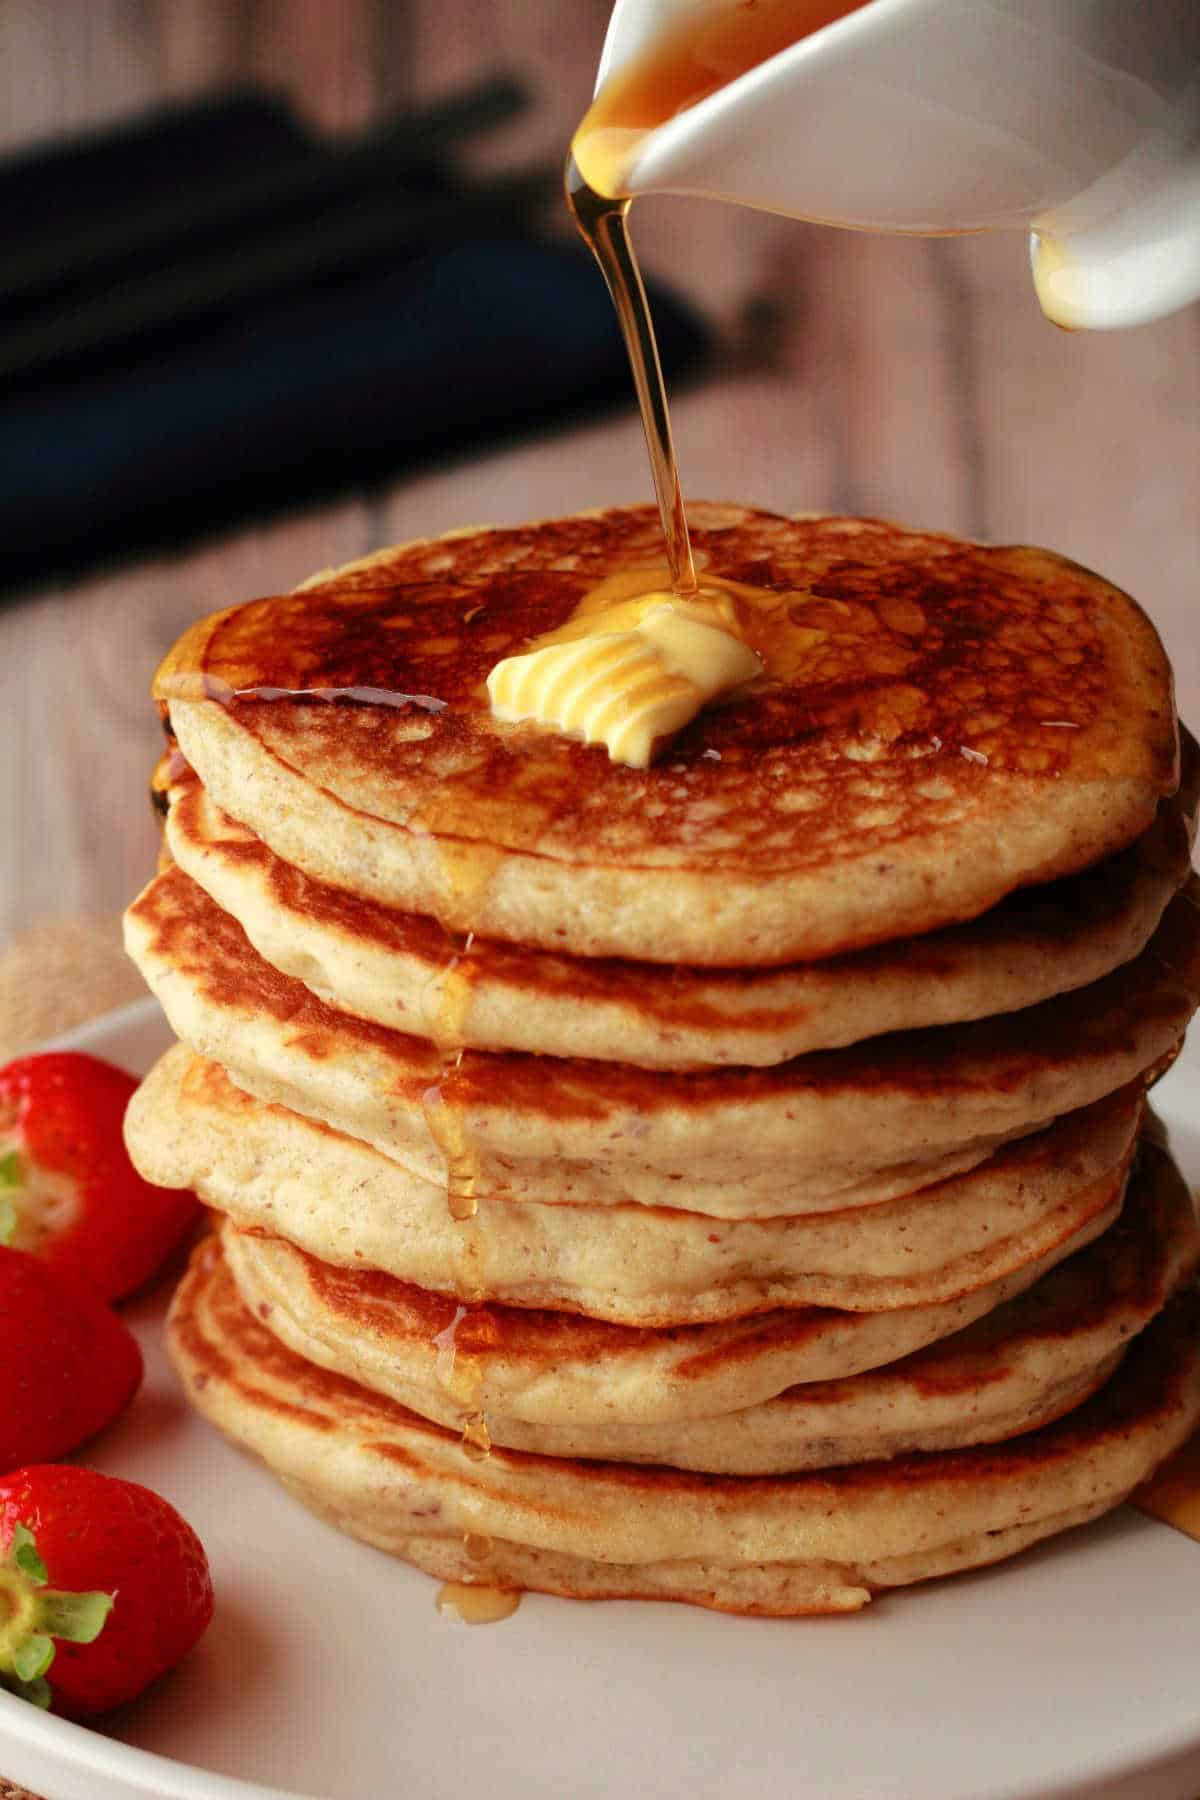 Vegan pancakes in a stack with syrup pouring over them.